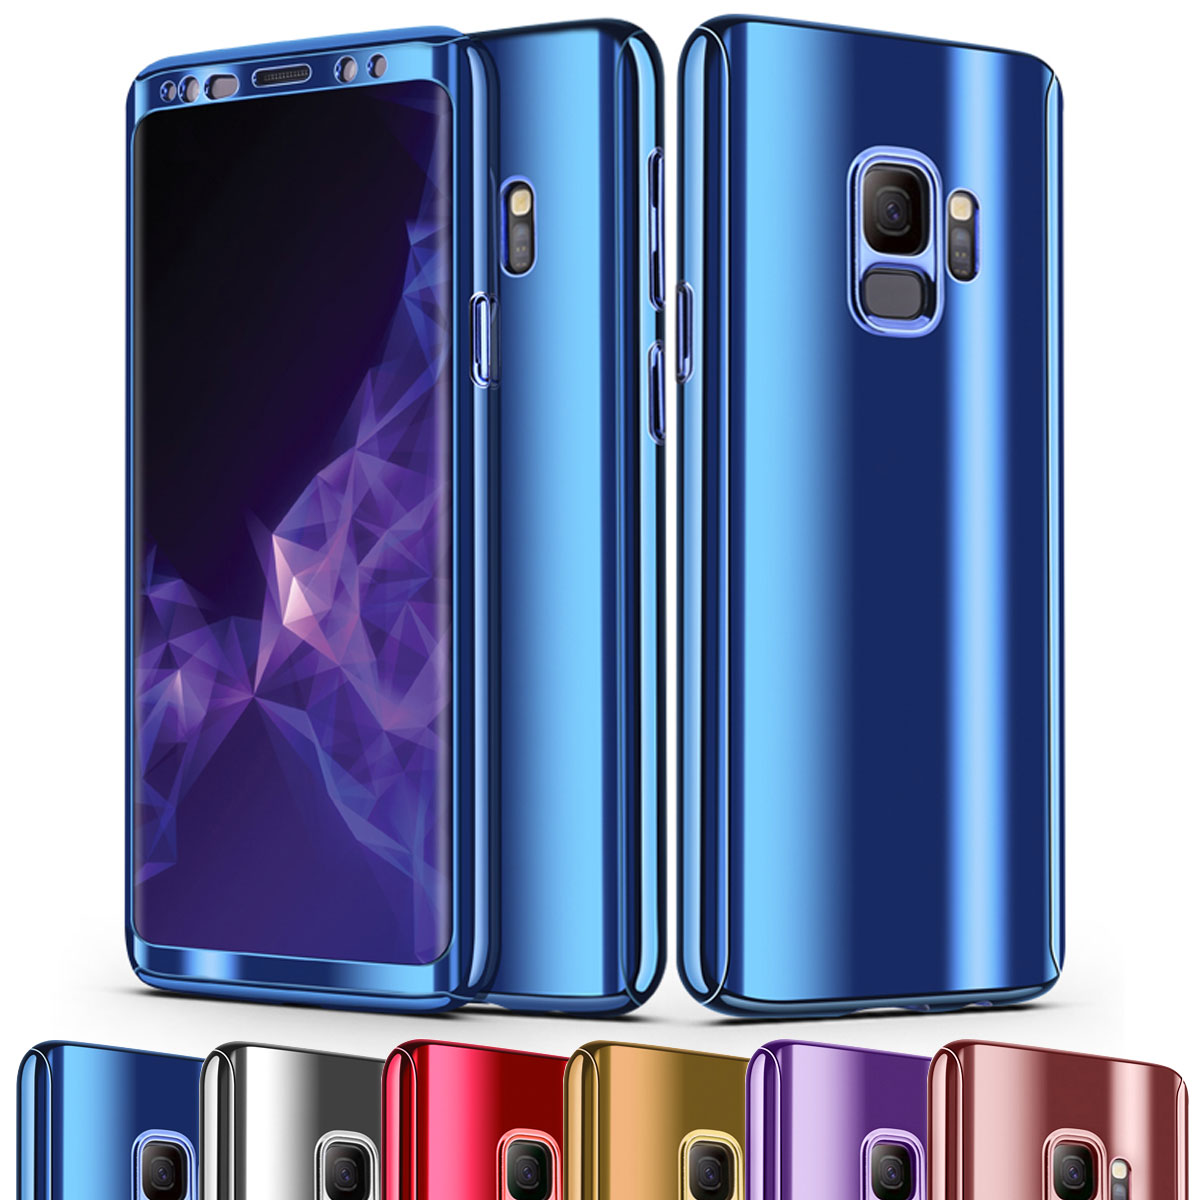 newest 3a562 cfad4 Details about Luxury Aluminium Metal Mirror Case PC Body Cover For Samsung  Galaxy S9 / S9 Plus